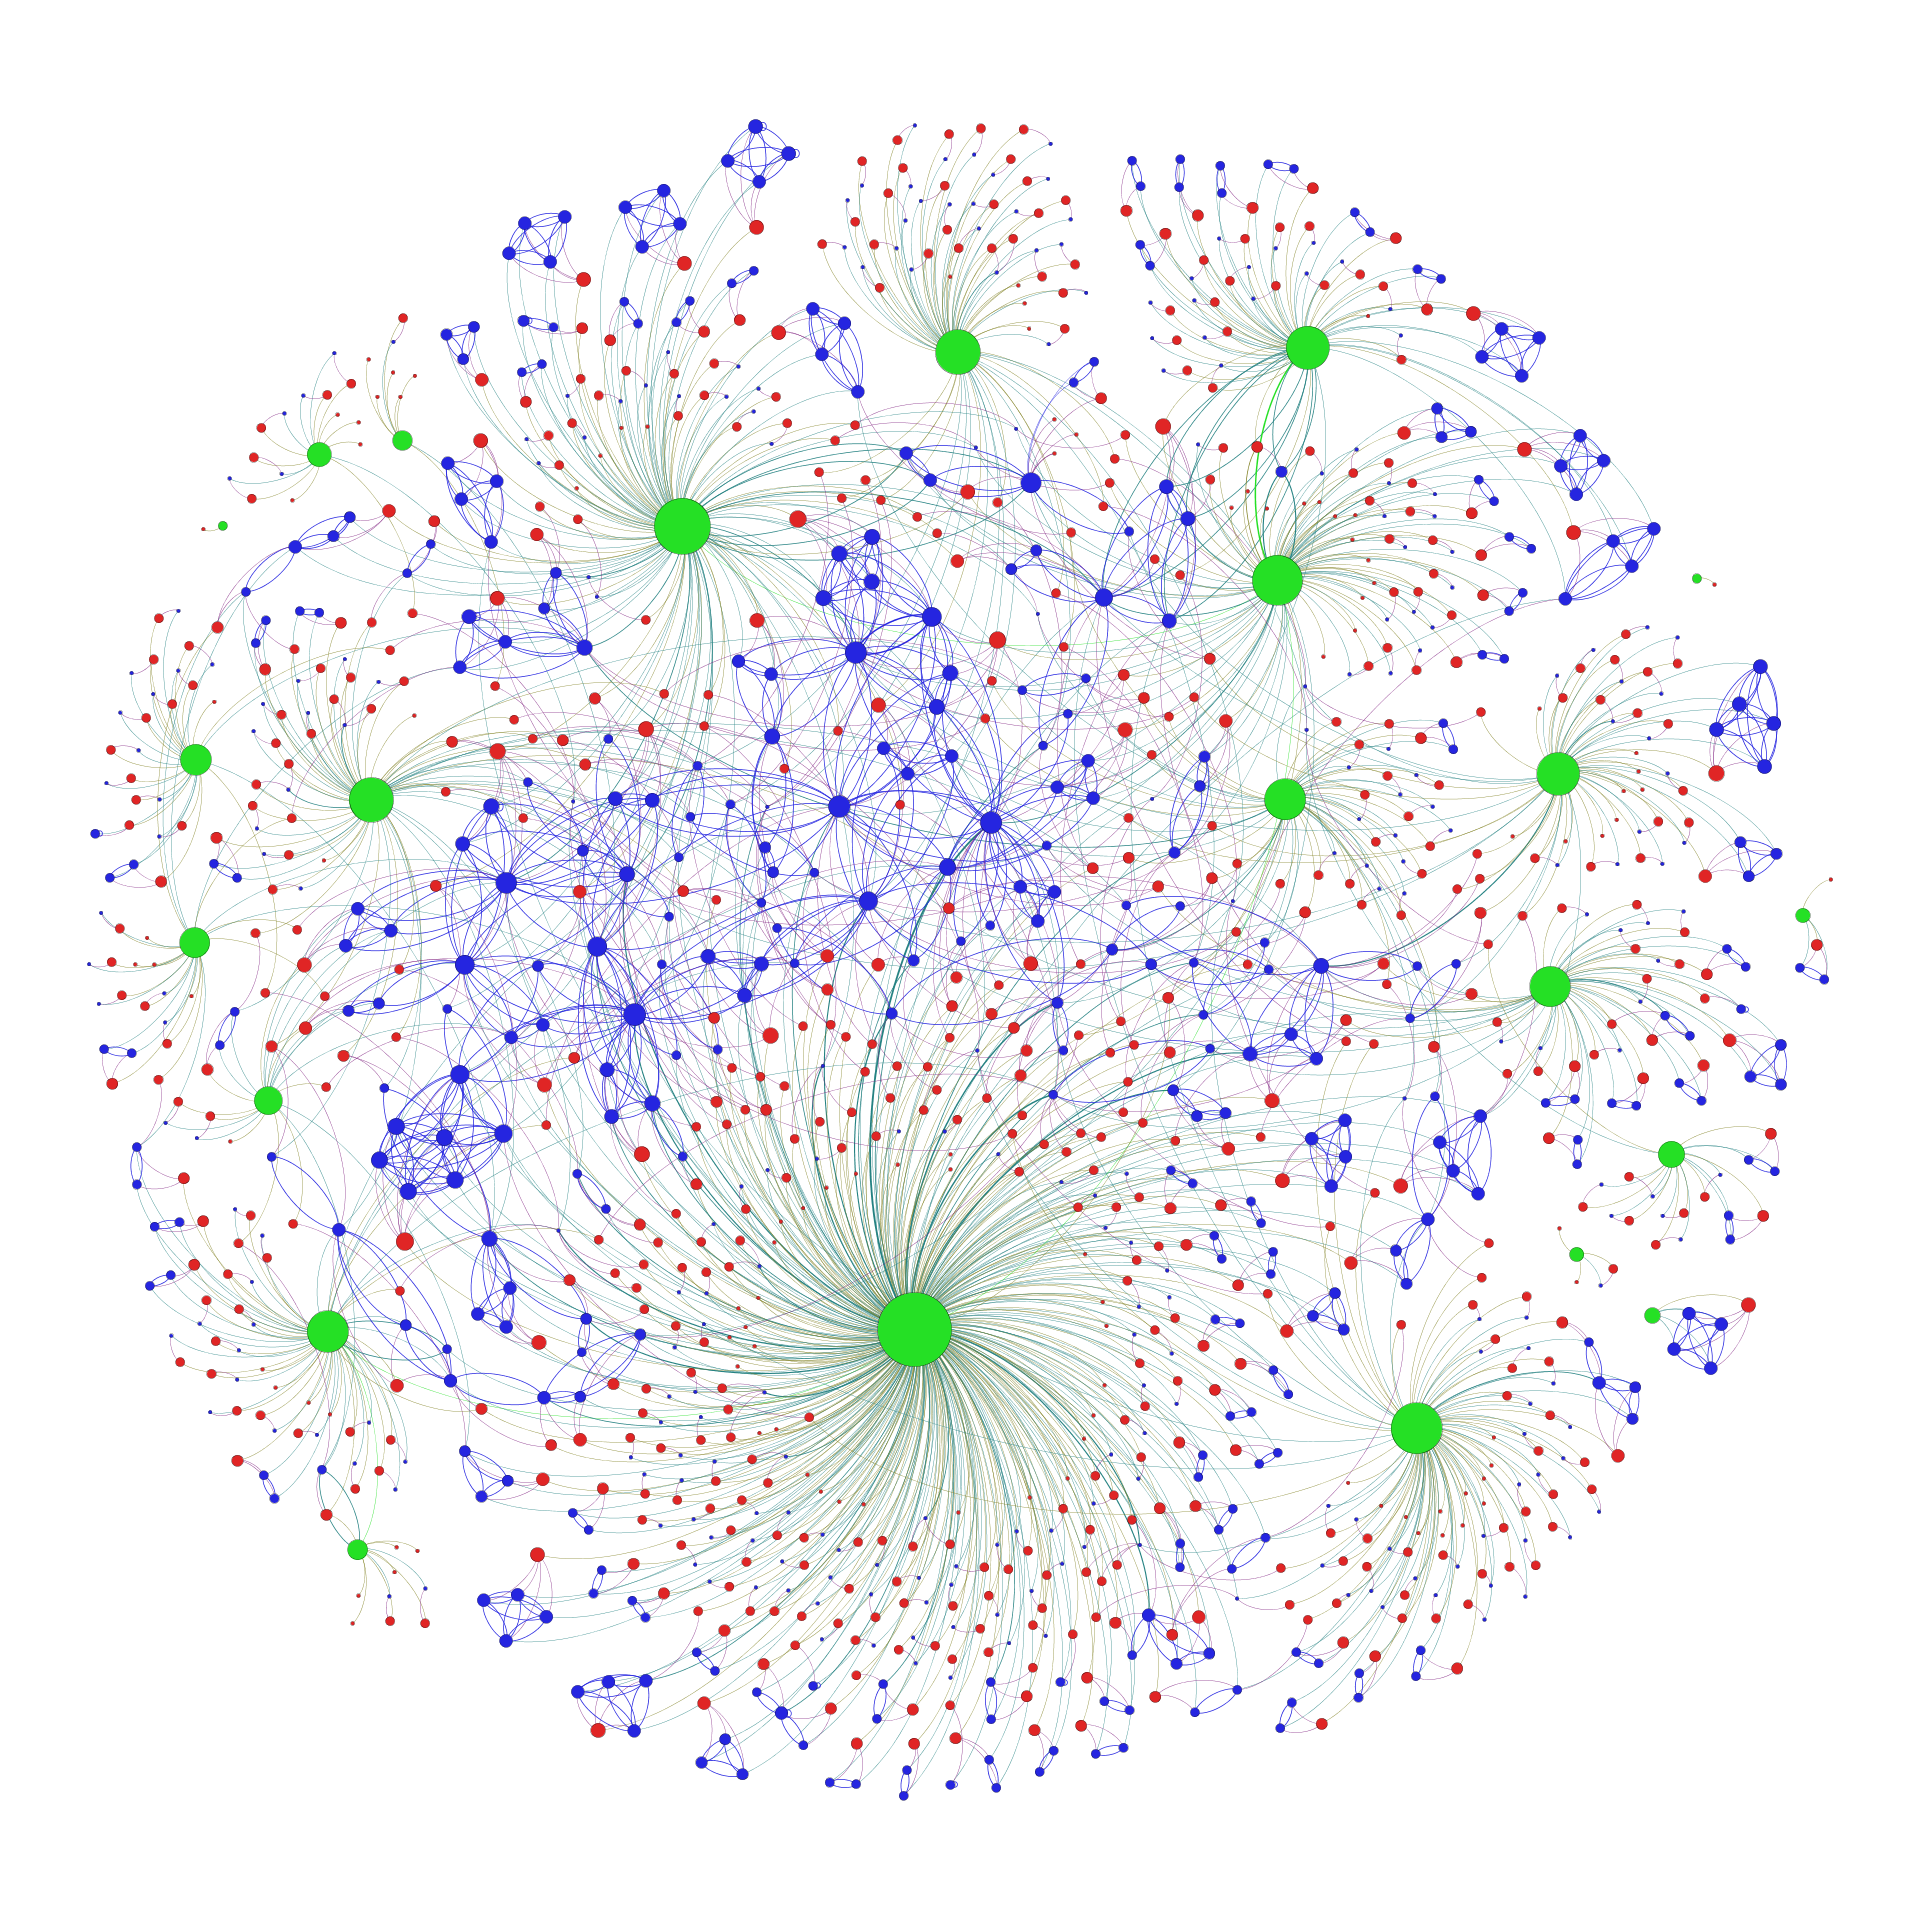 Hackaday Network Analysis